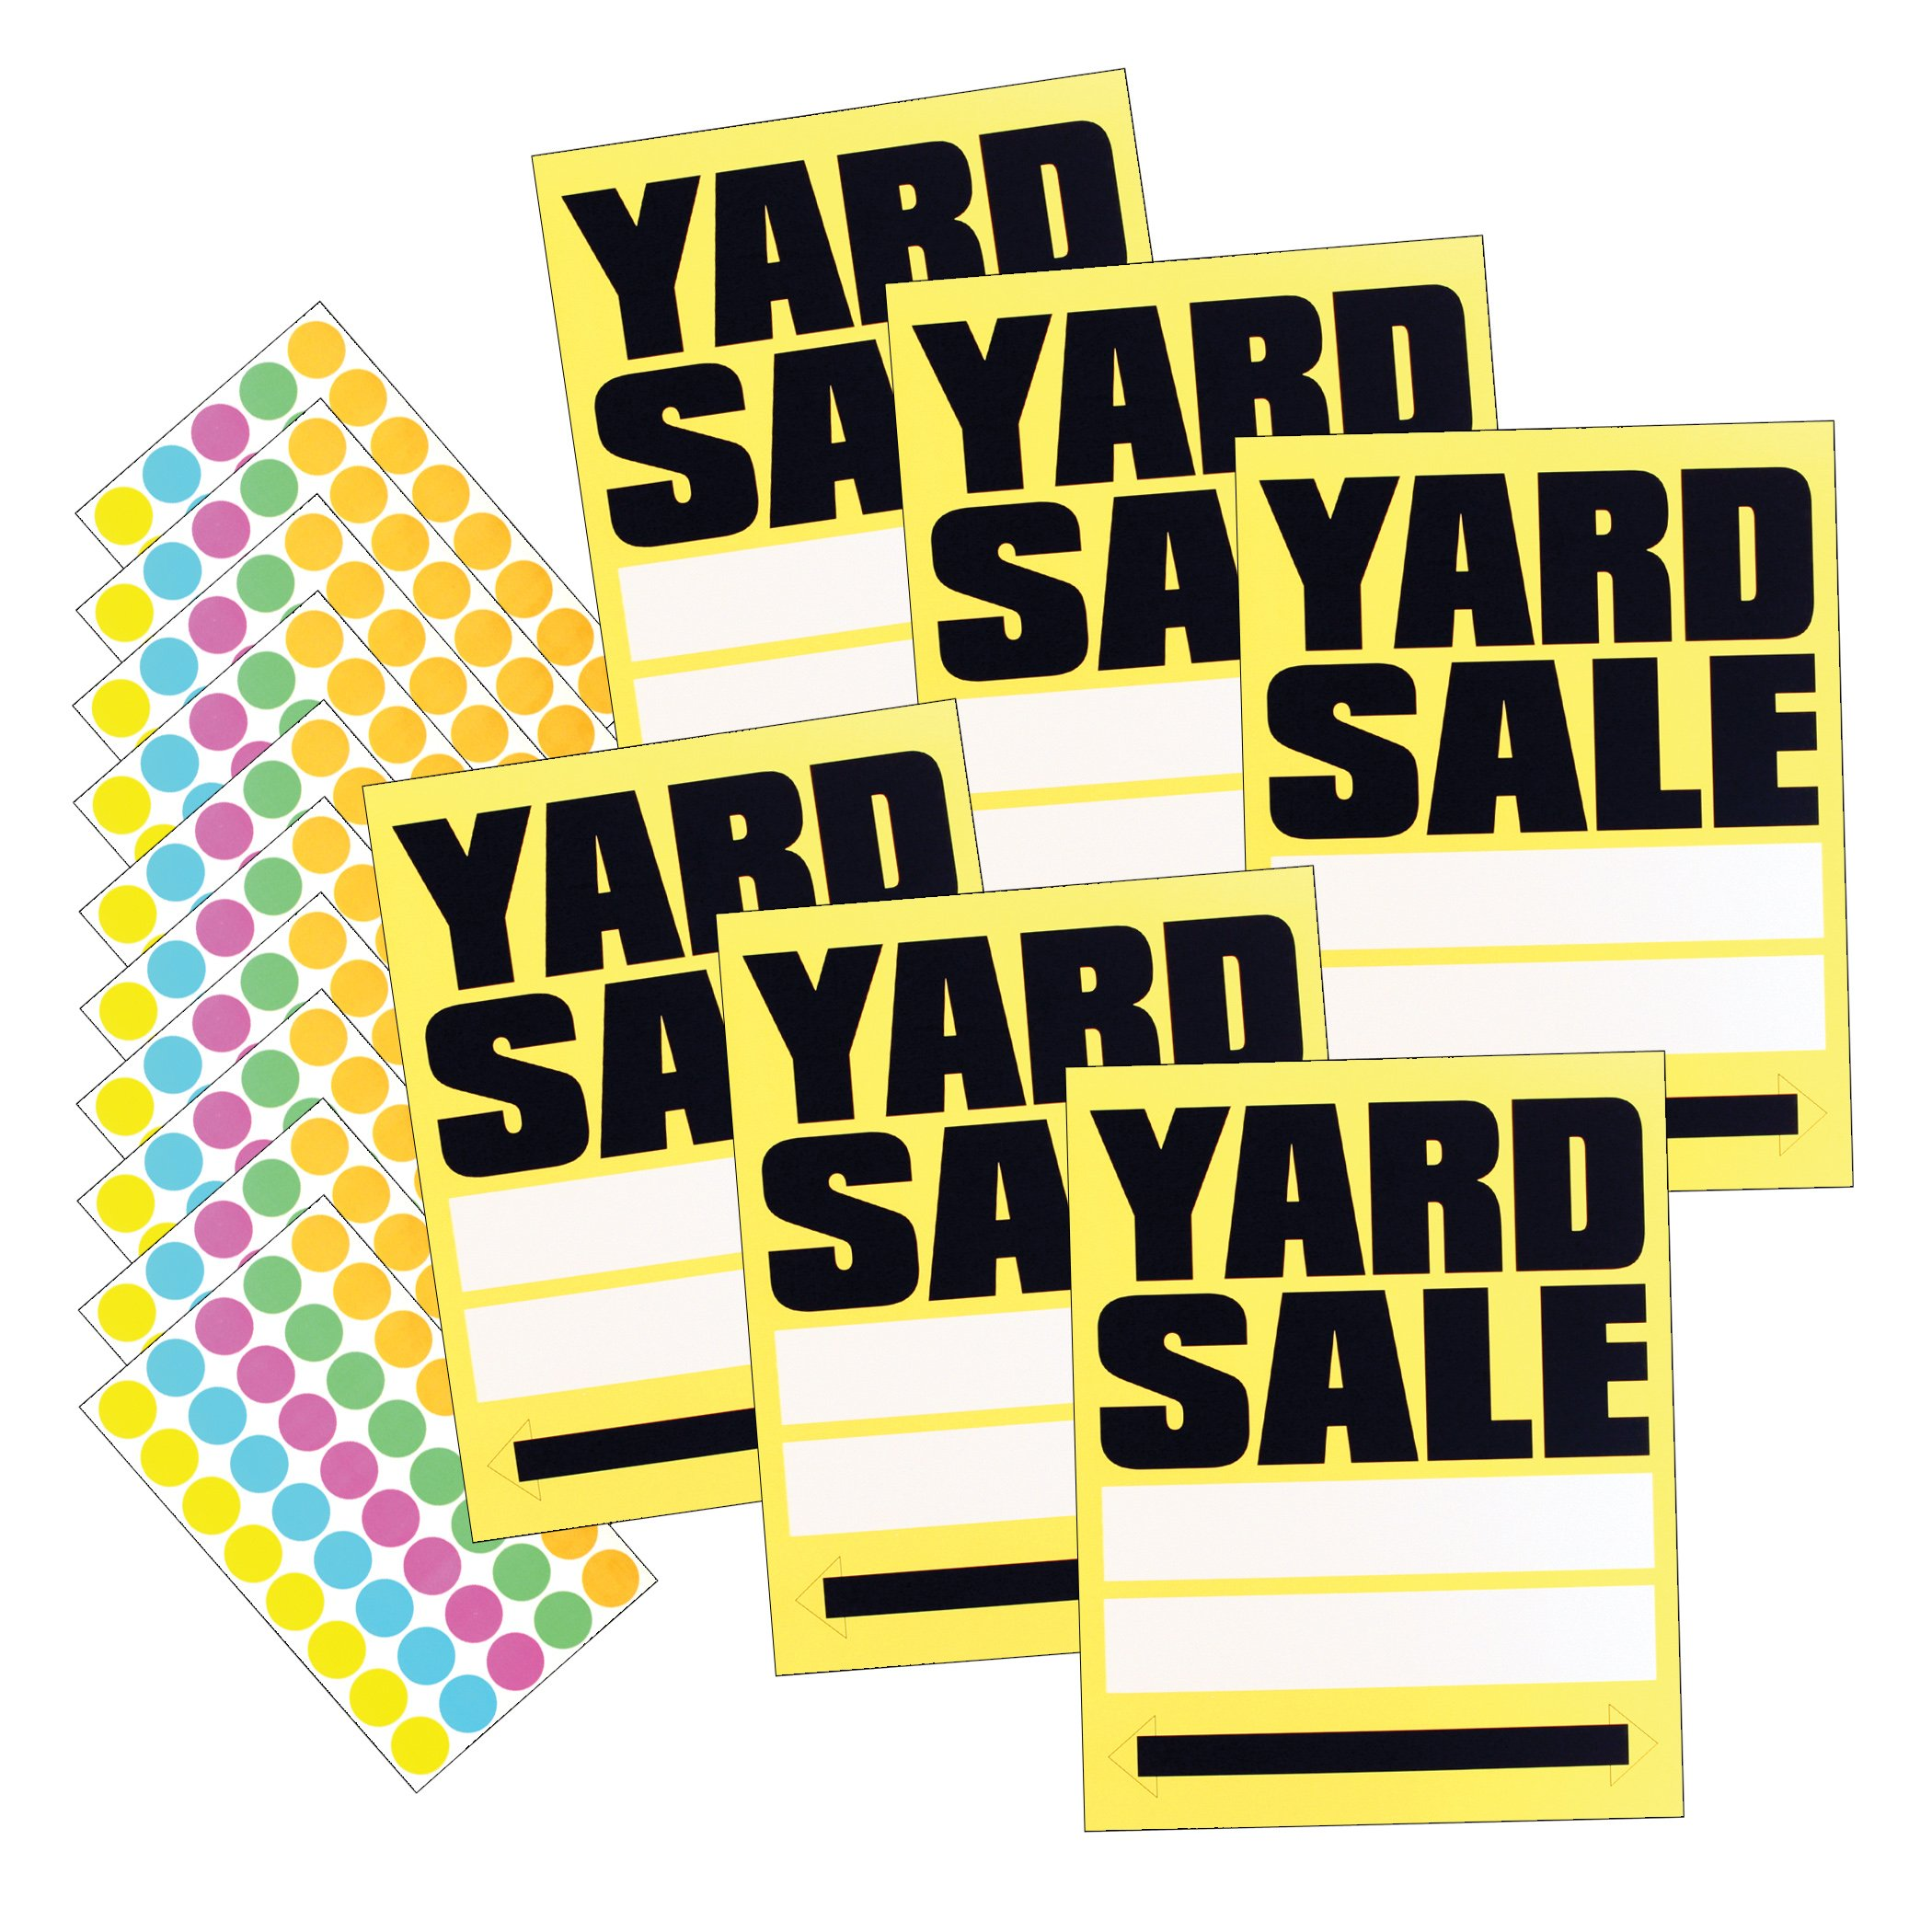 HeadLine Sign - Large YARD SALE Signs with 400 Sticker Sale Tags, Yellow/Black, 11 x 14 Inches, 6-Pack of Signs (5505)